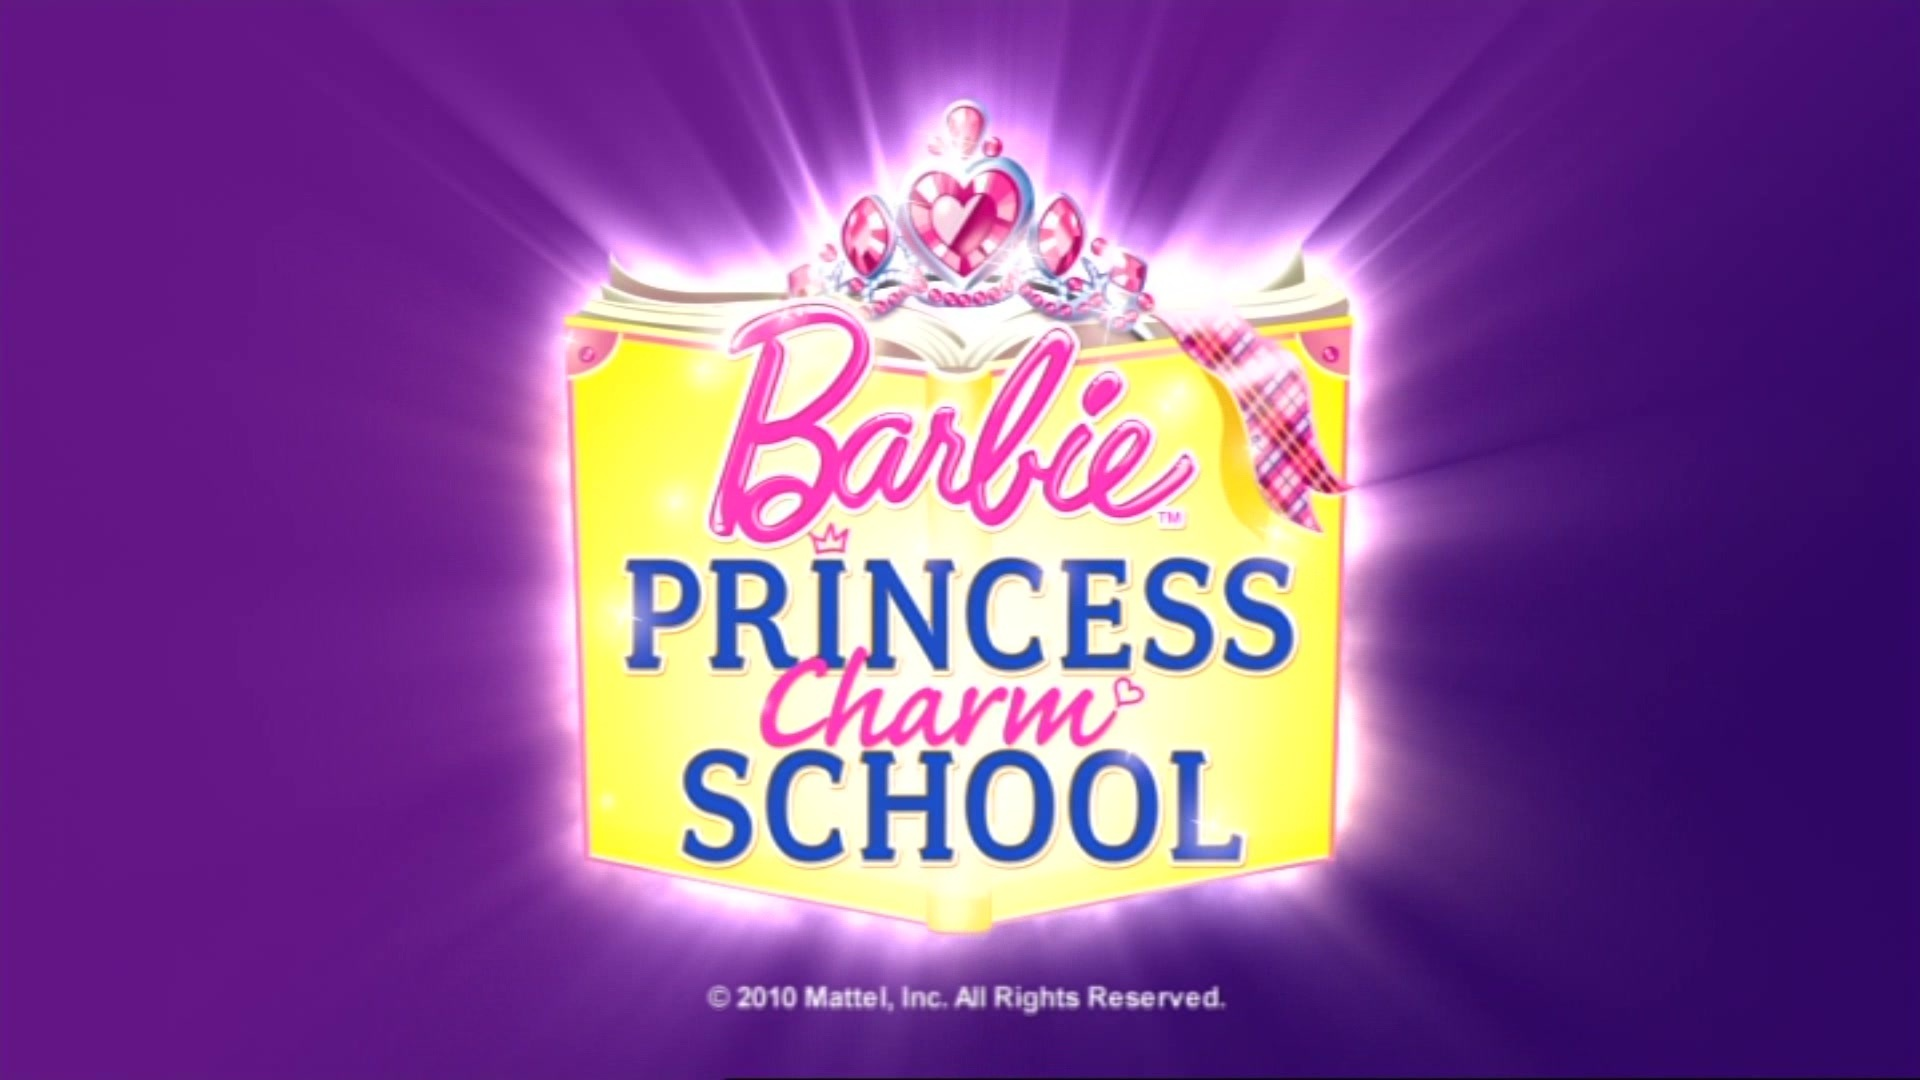 Barbie princess sharm school - barbie-movies photo